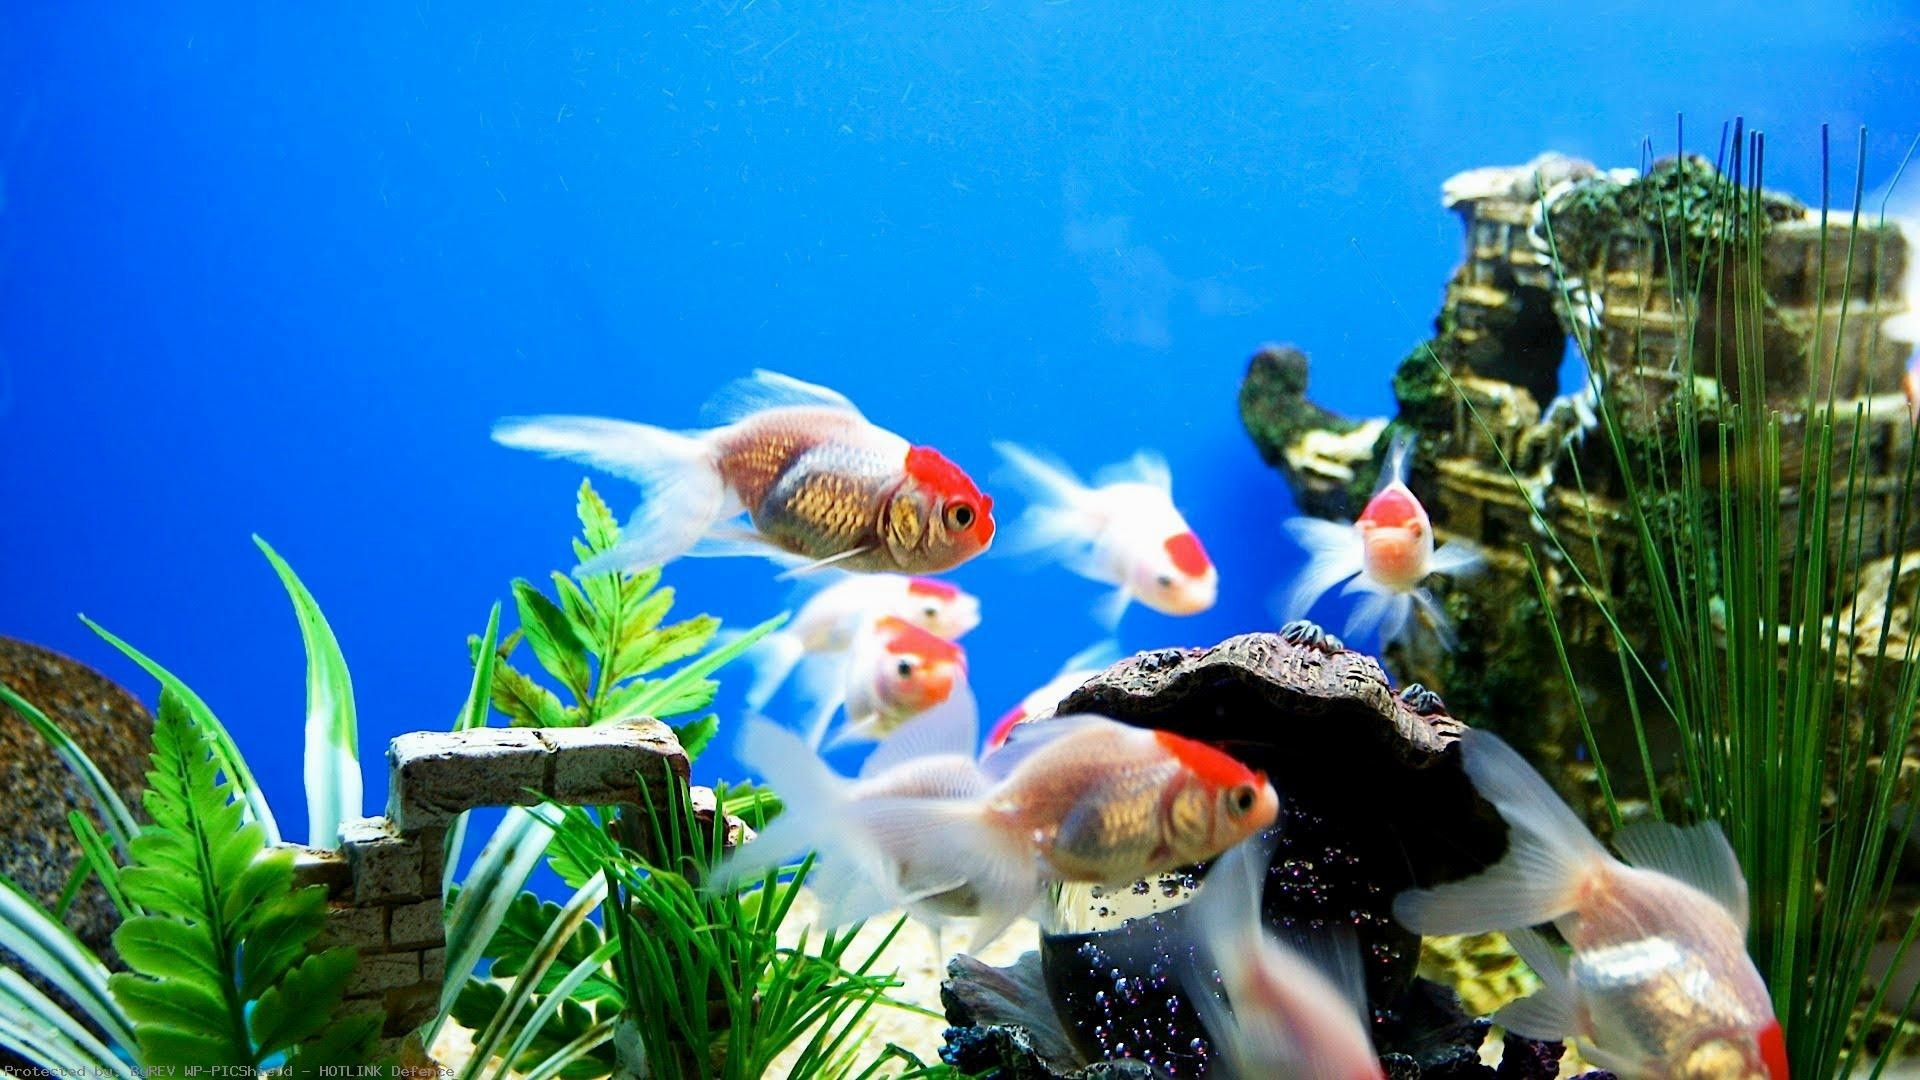 aquarium wallpaper free download for pc windows 8 enterprise 1920x1080 free live wallpapers for android